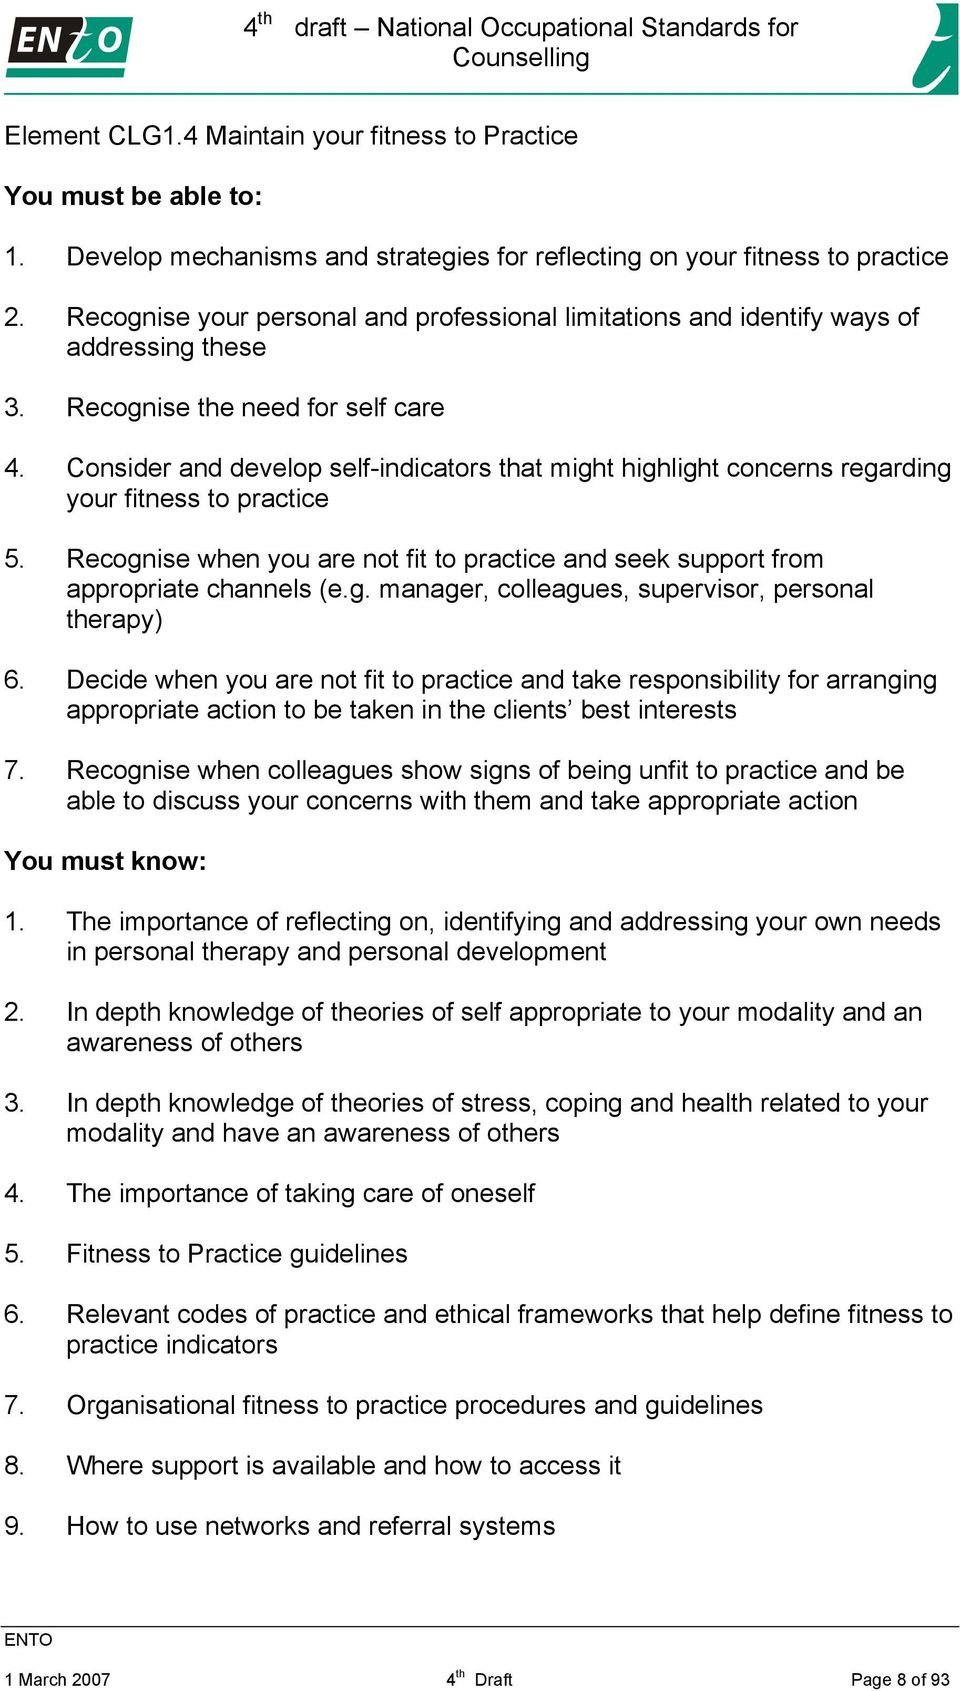 Consider and develop self-indicators that might highlight concerns regarding your fitness to practice 5. Recognise when you are not fit to practice and seek support from appropriate channels (e.g. manager, colleagues, supervisor, personal therapy) 6.